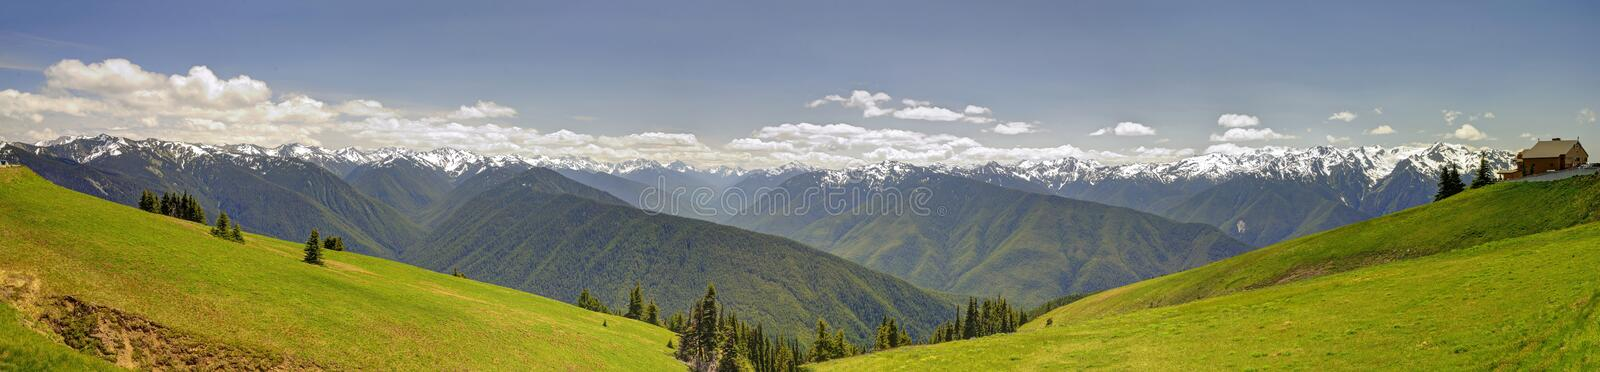 Panorama of Hurricane Ridge mountain landscape, meadow, Olympic National Park. United States stock photos